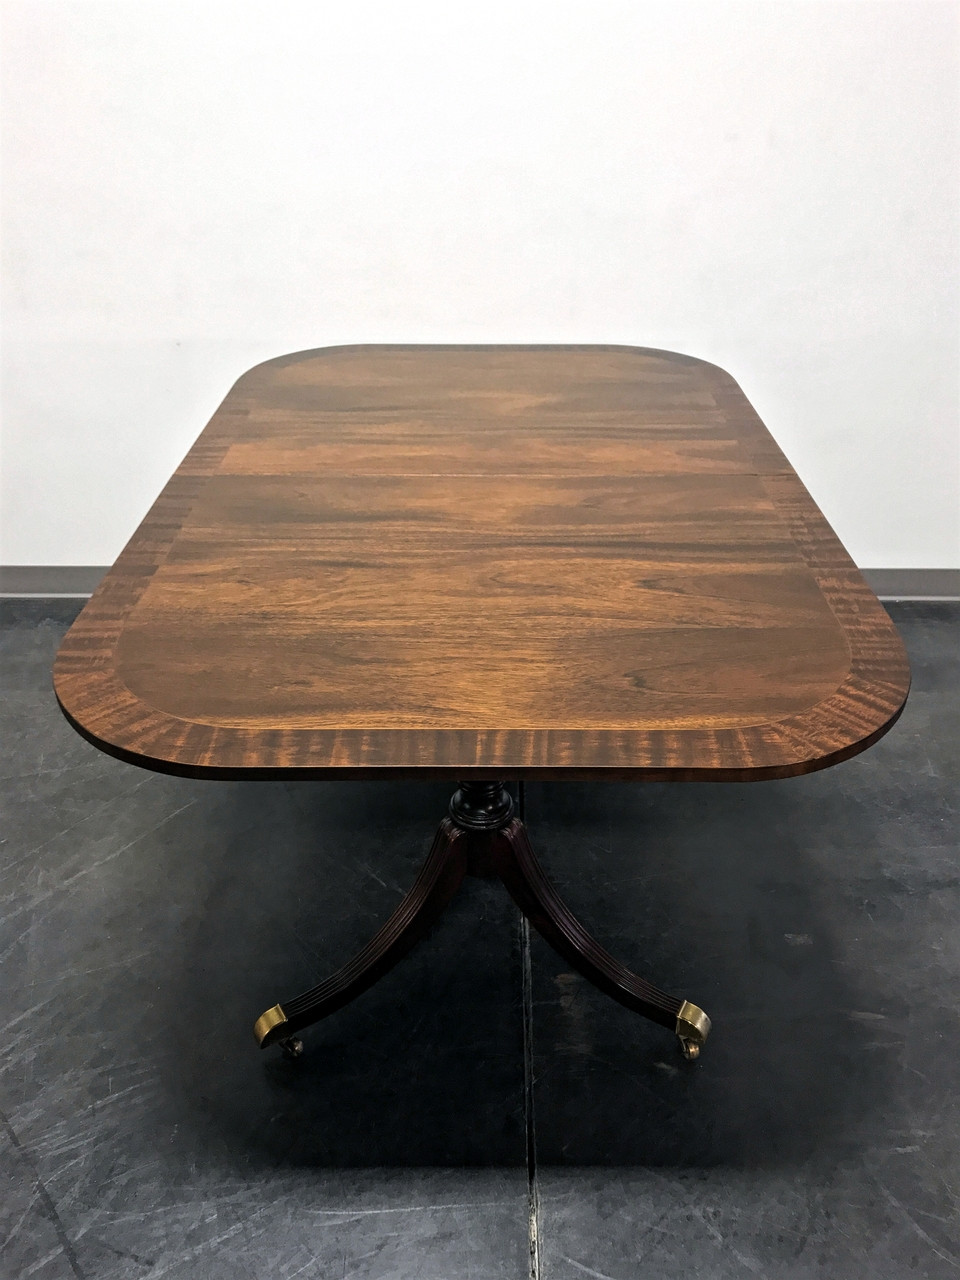 Refurbished Vintage Banded Mahogany Double Pedestal Banquet Dining Table W 3 Leaves